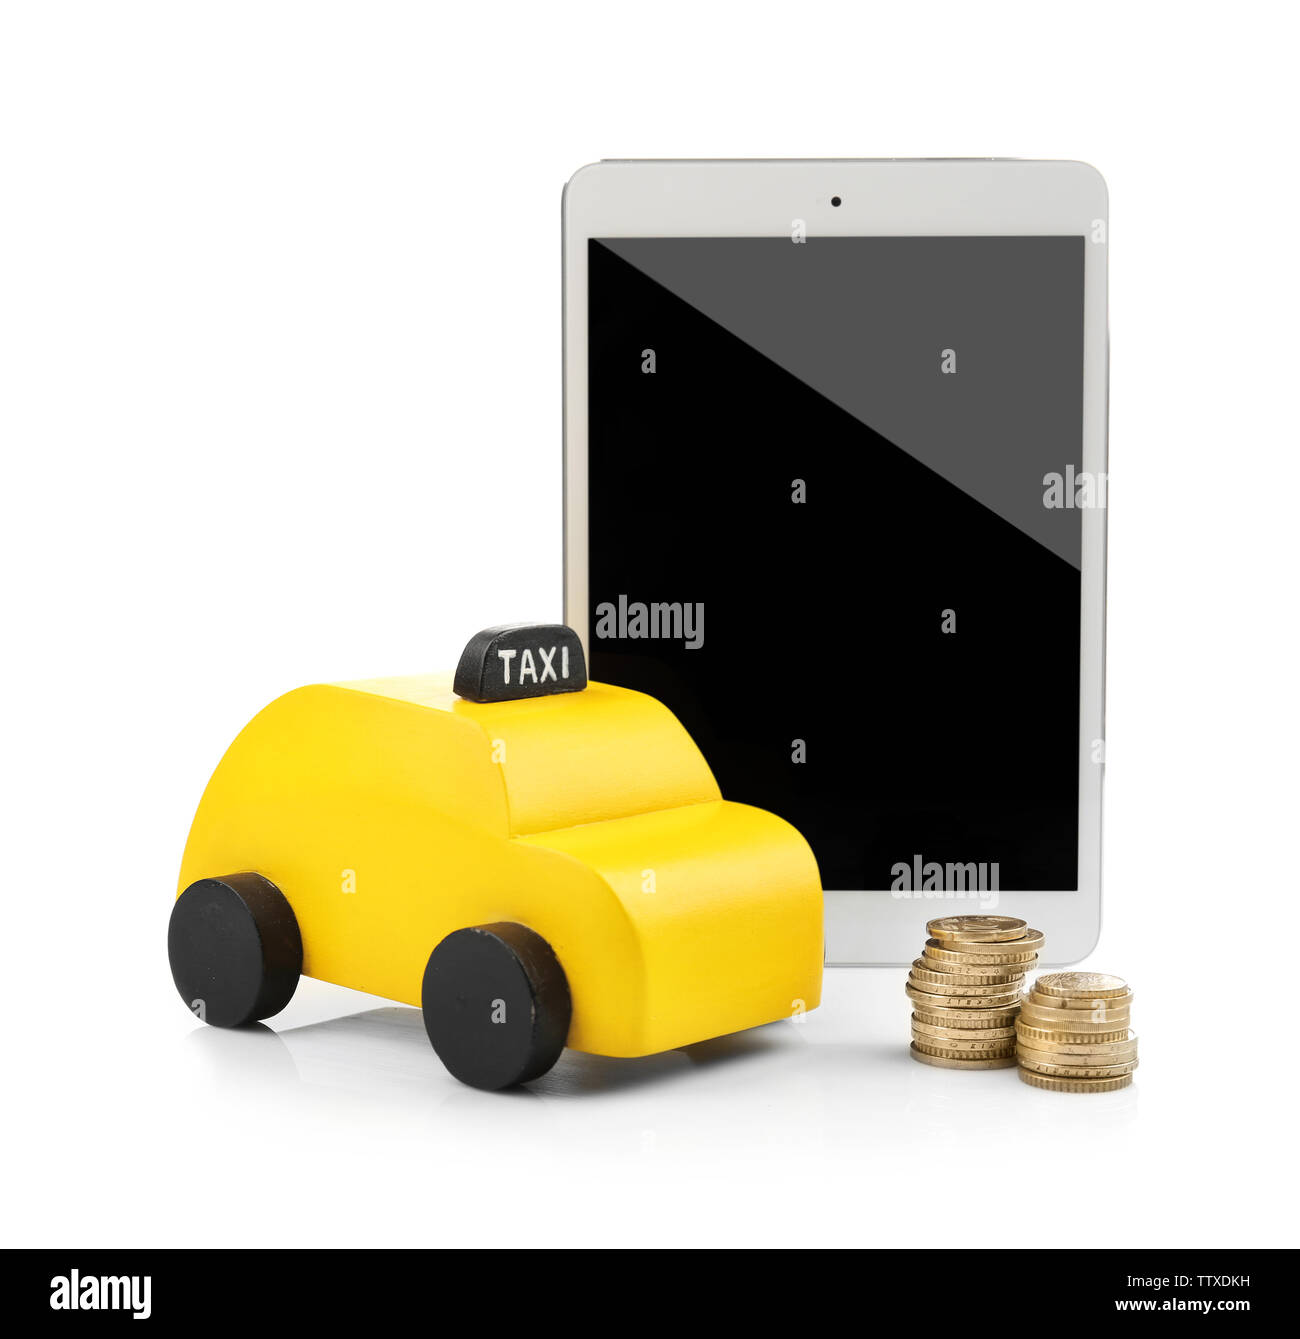 Yellow toy taxi cab, tablet and coins isolated on white - Stock Image